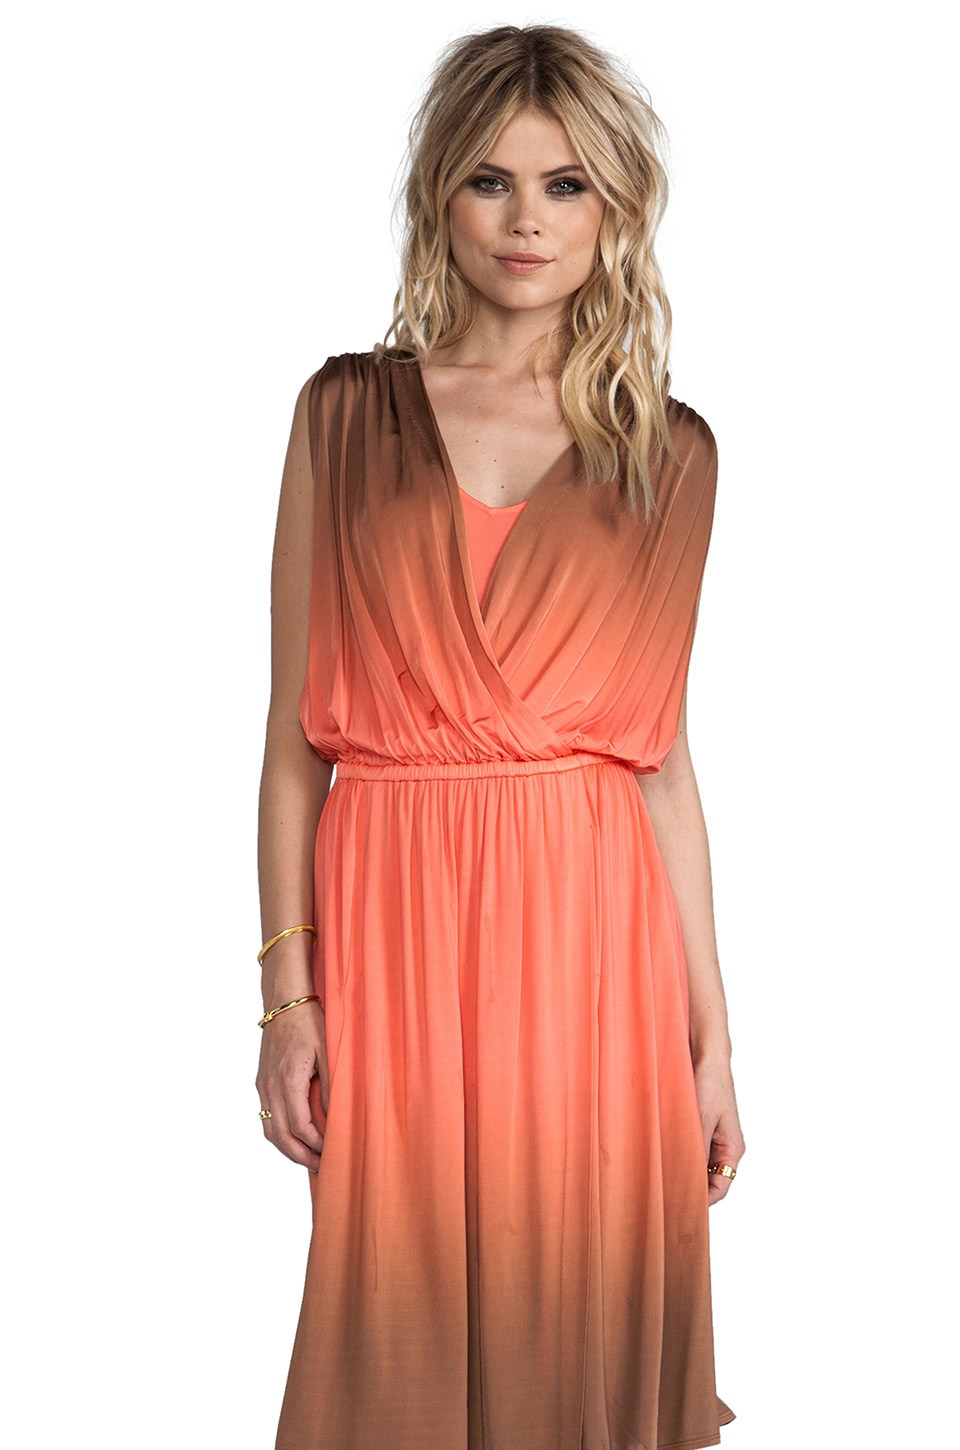 Plenty by Tracy Reese Dip Dyed Slinky Jersey Draped Surplice Dress in Clementine/Adobe